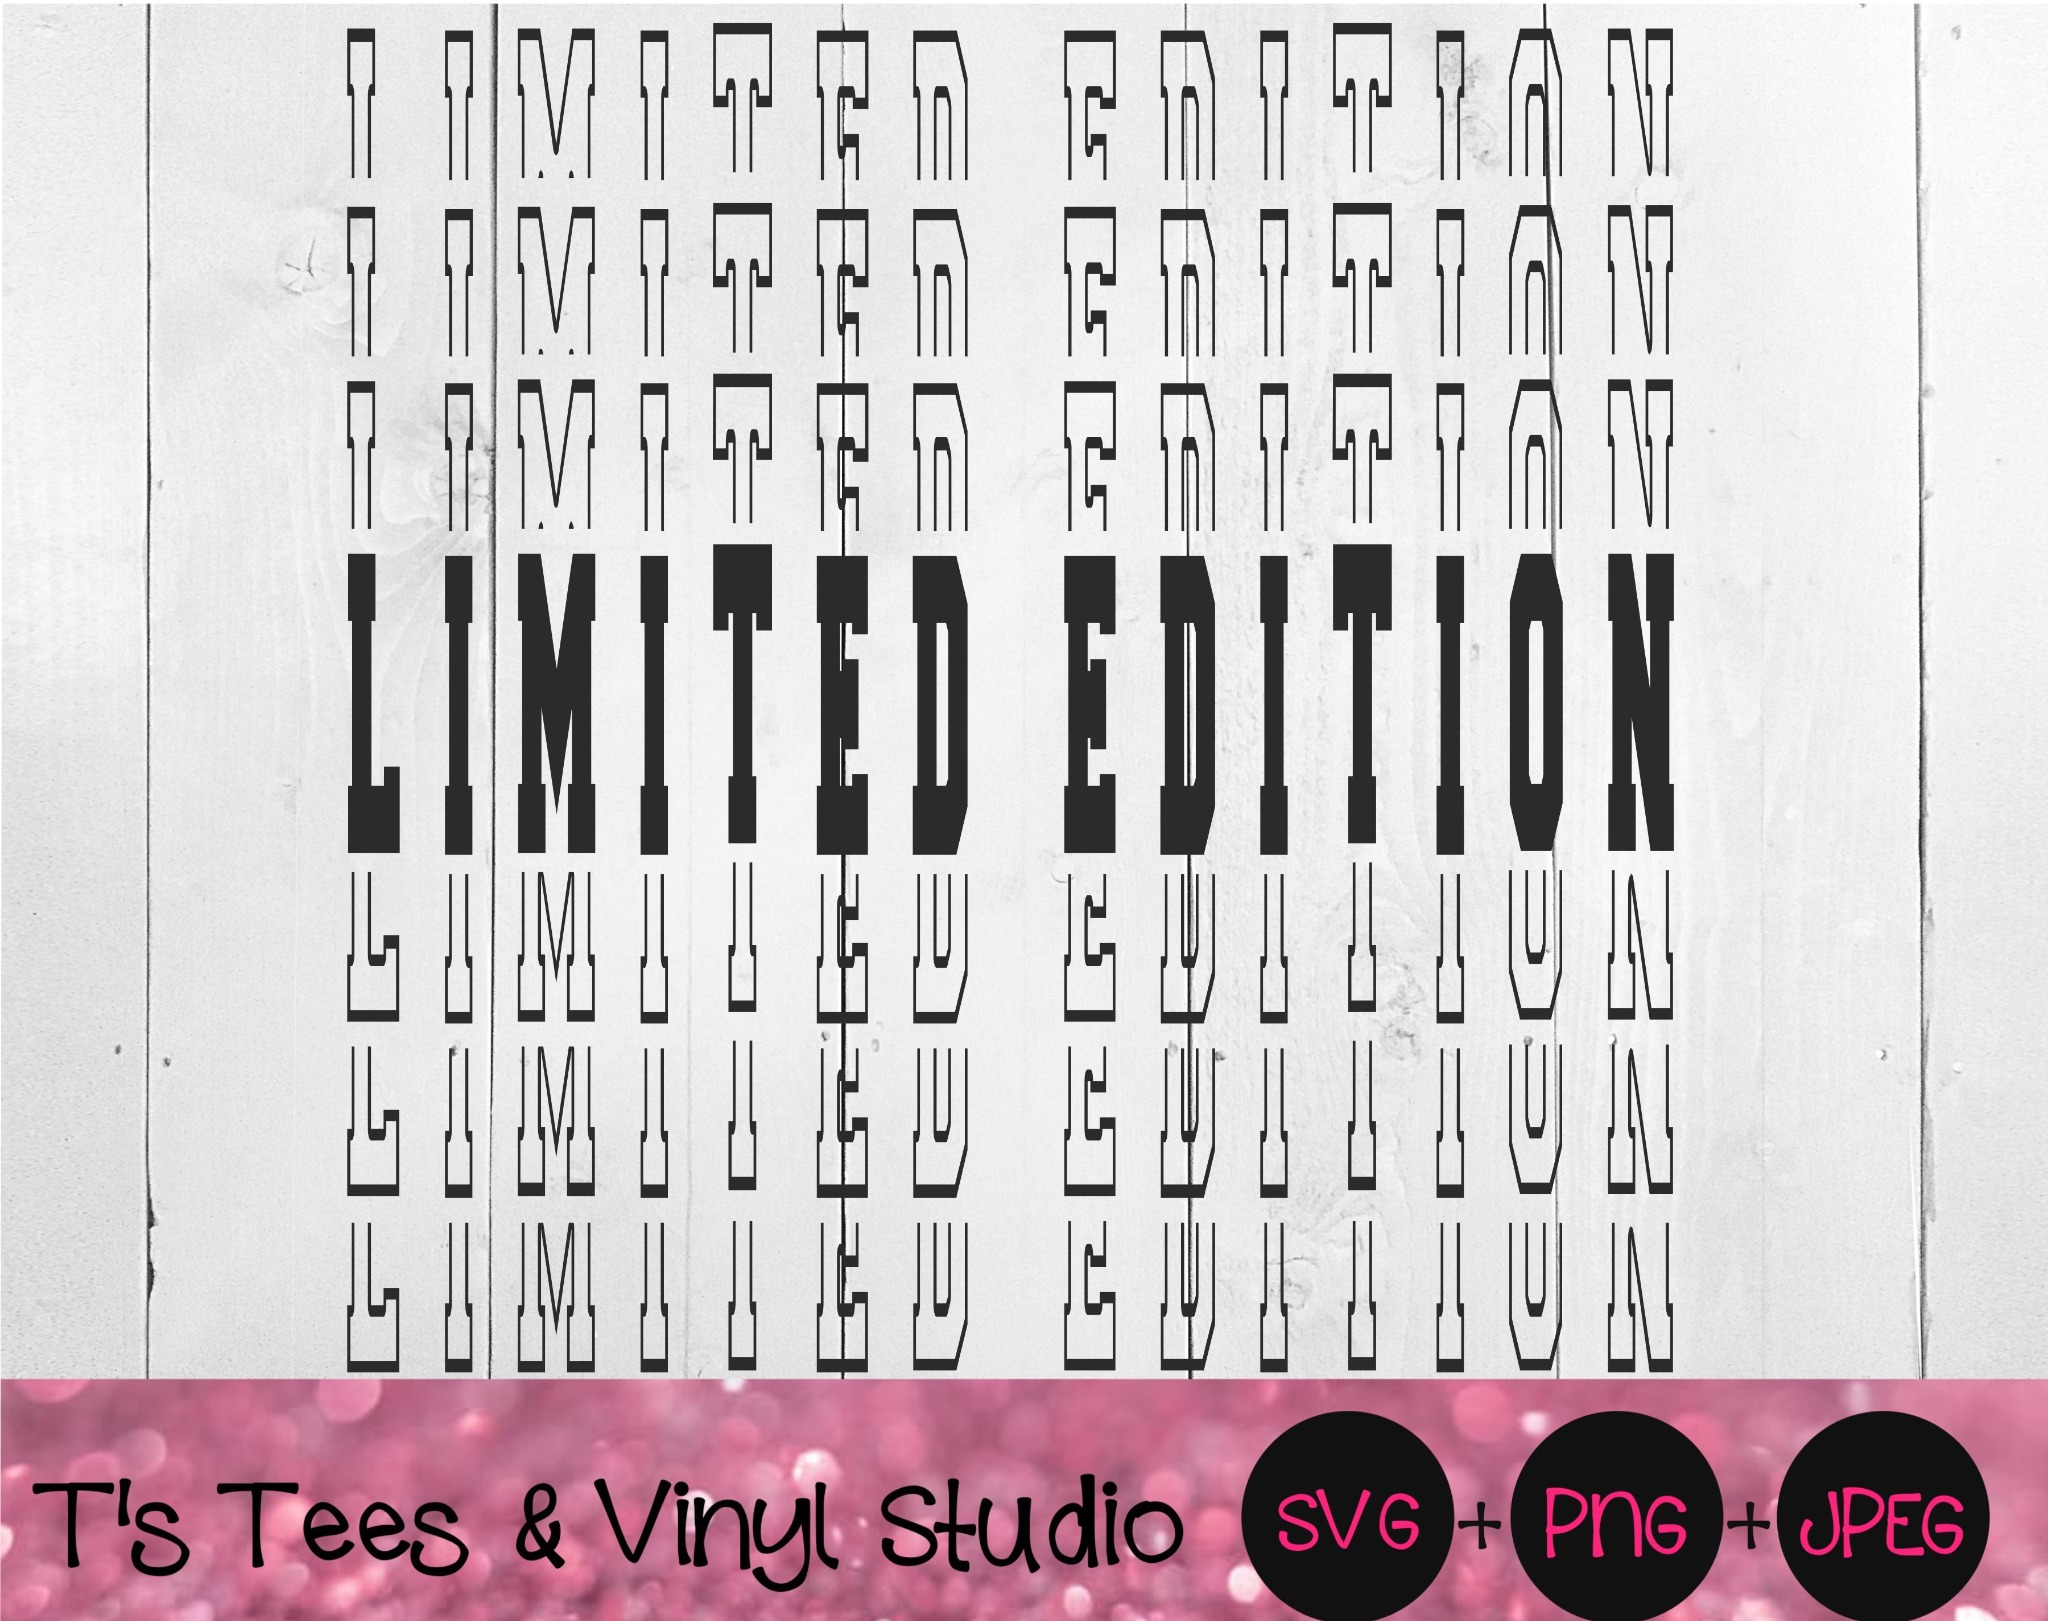 Limited Edition Svg, Mirror Cut File, Mirrored Png, One Of A Kind, Only One Me, Only One You, Birthd